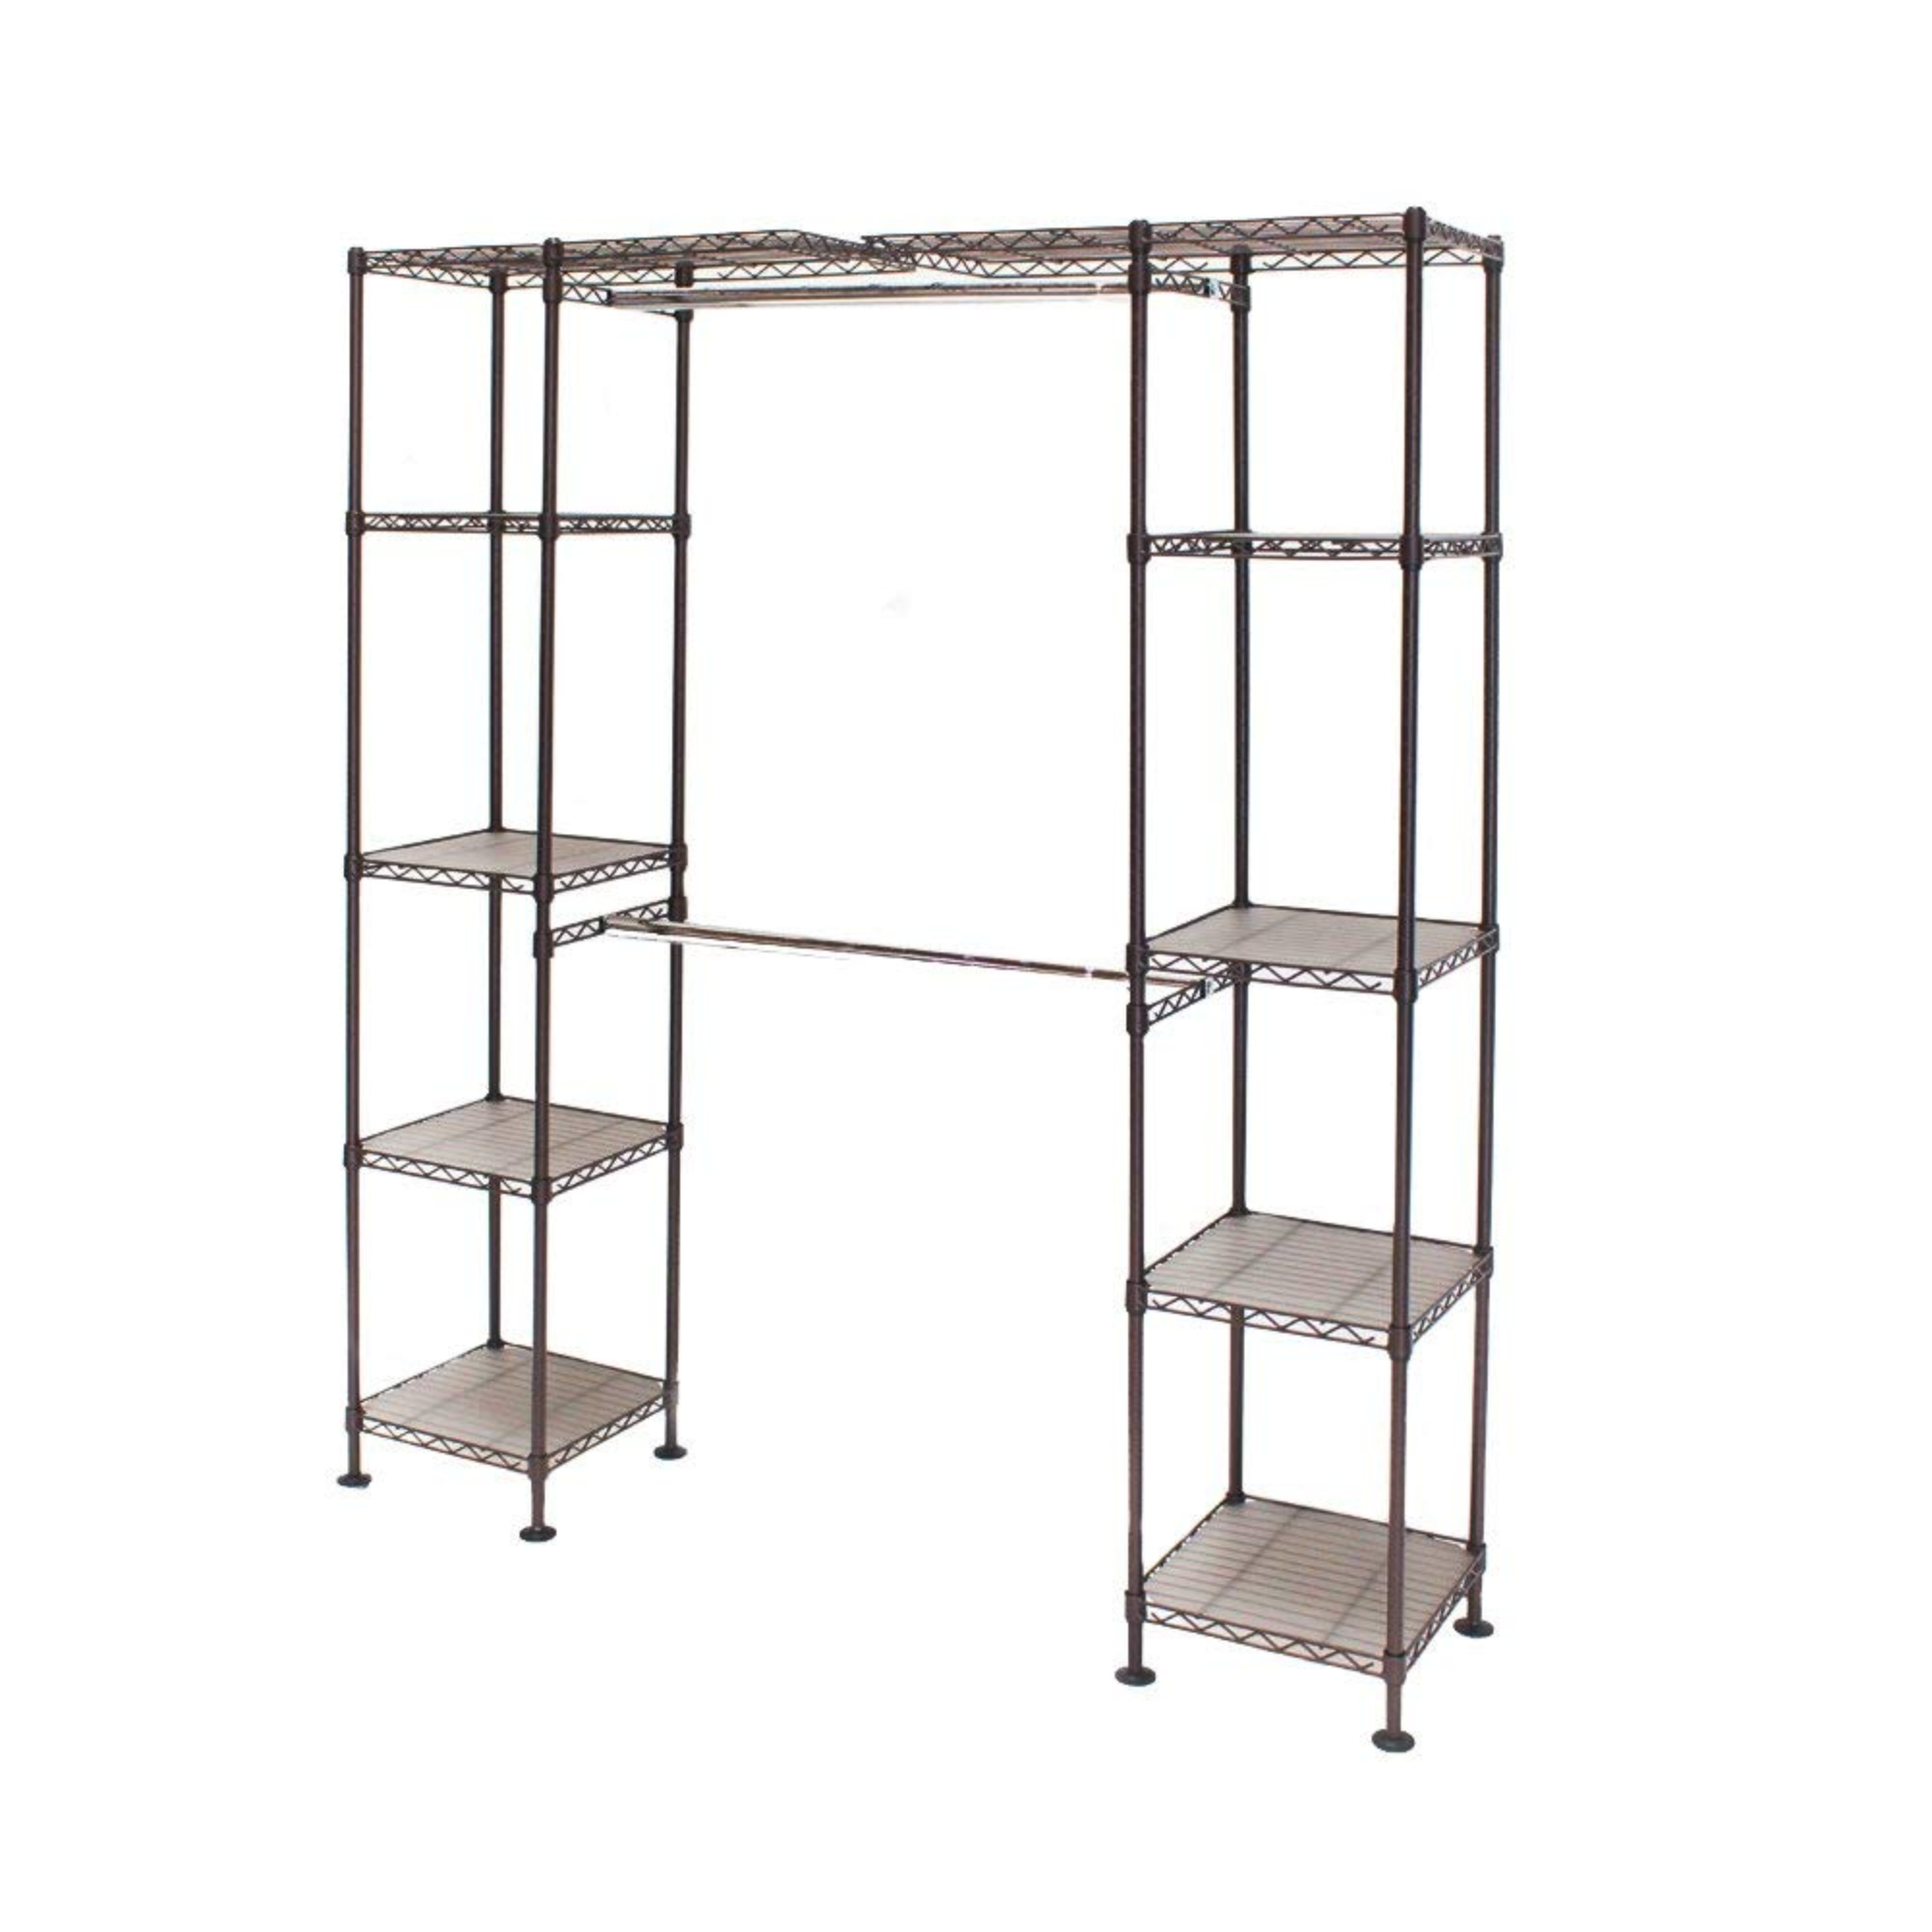 "Expandable Closet Organizer System, Satin Bronze 58""-83""W by Seville Classics"